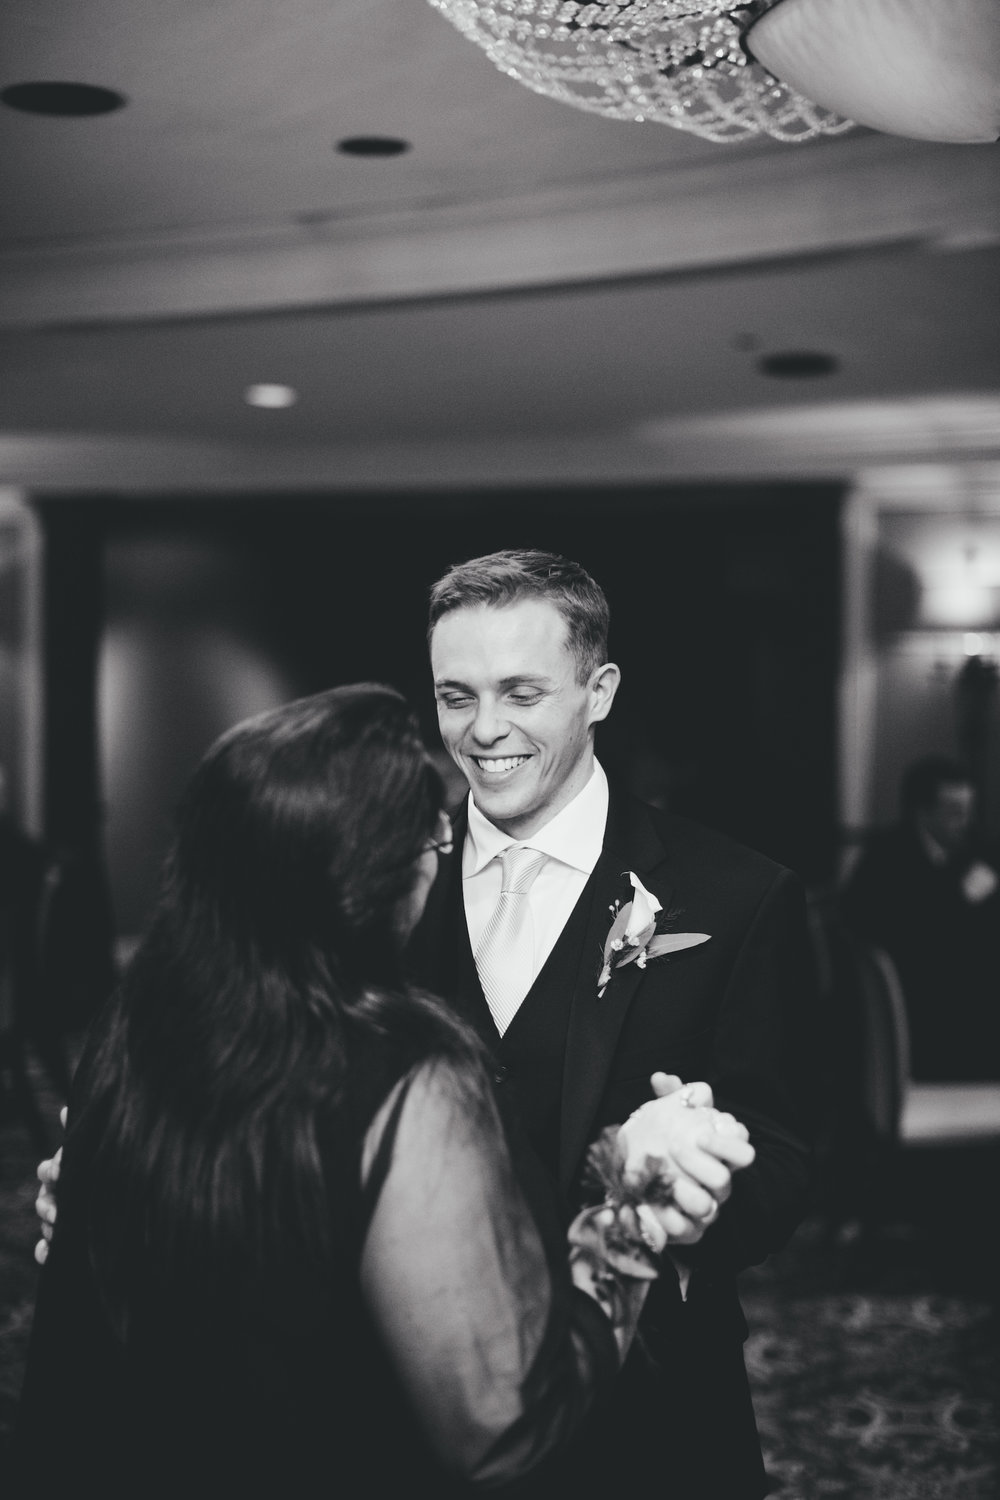 Matthew & Megan - Reception - Jake & Katie Photography_099.jpg